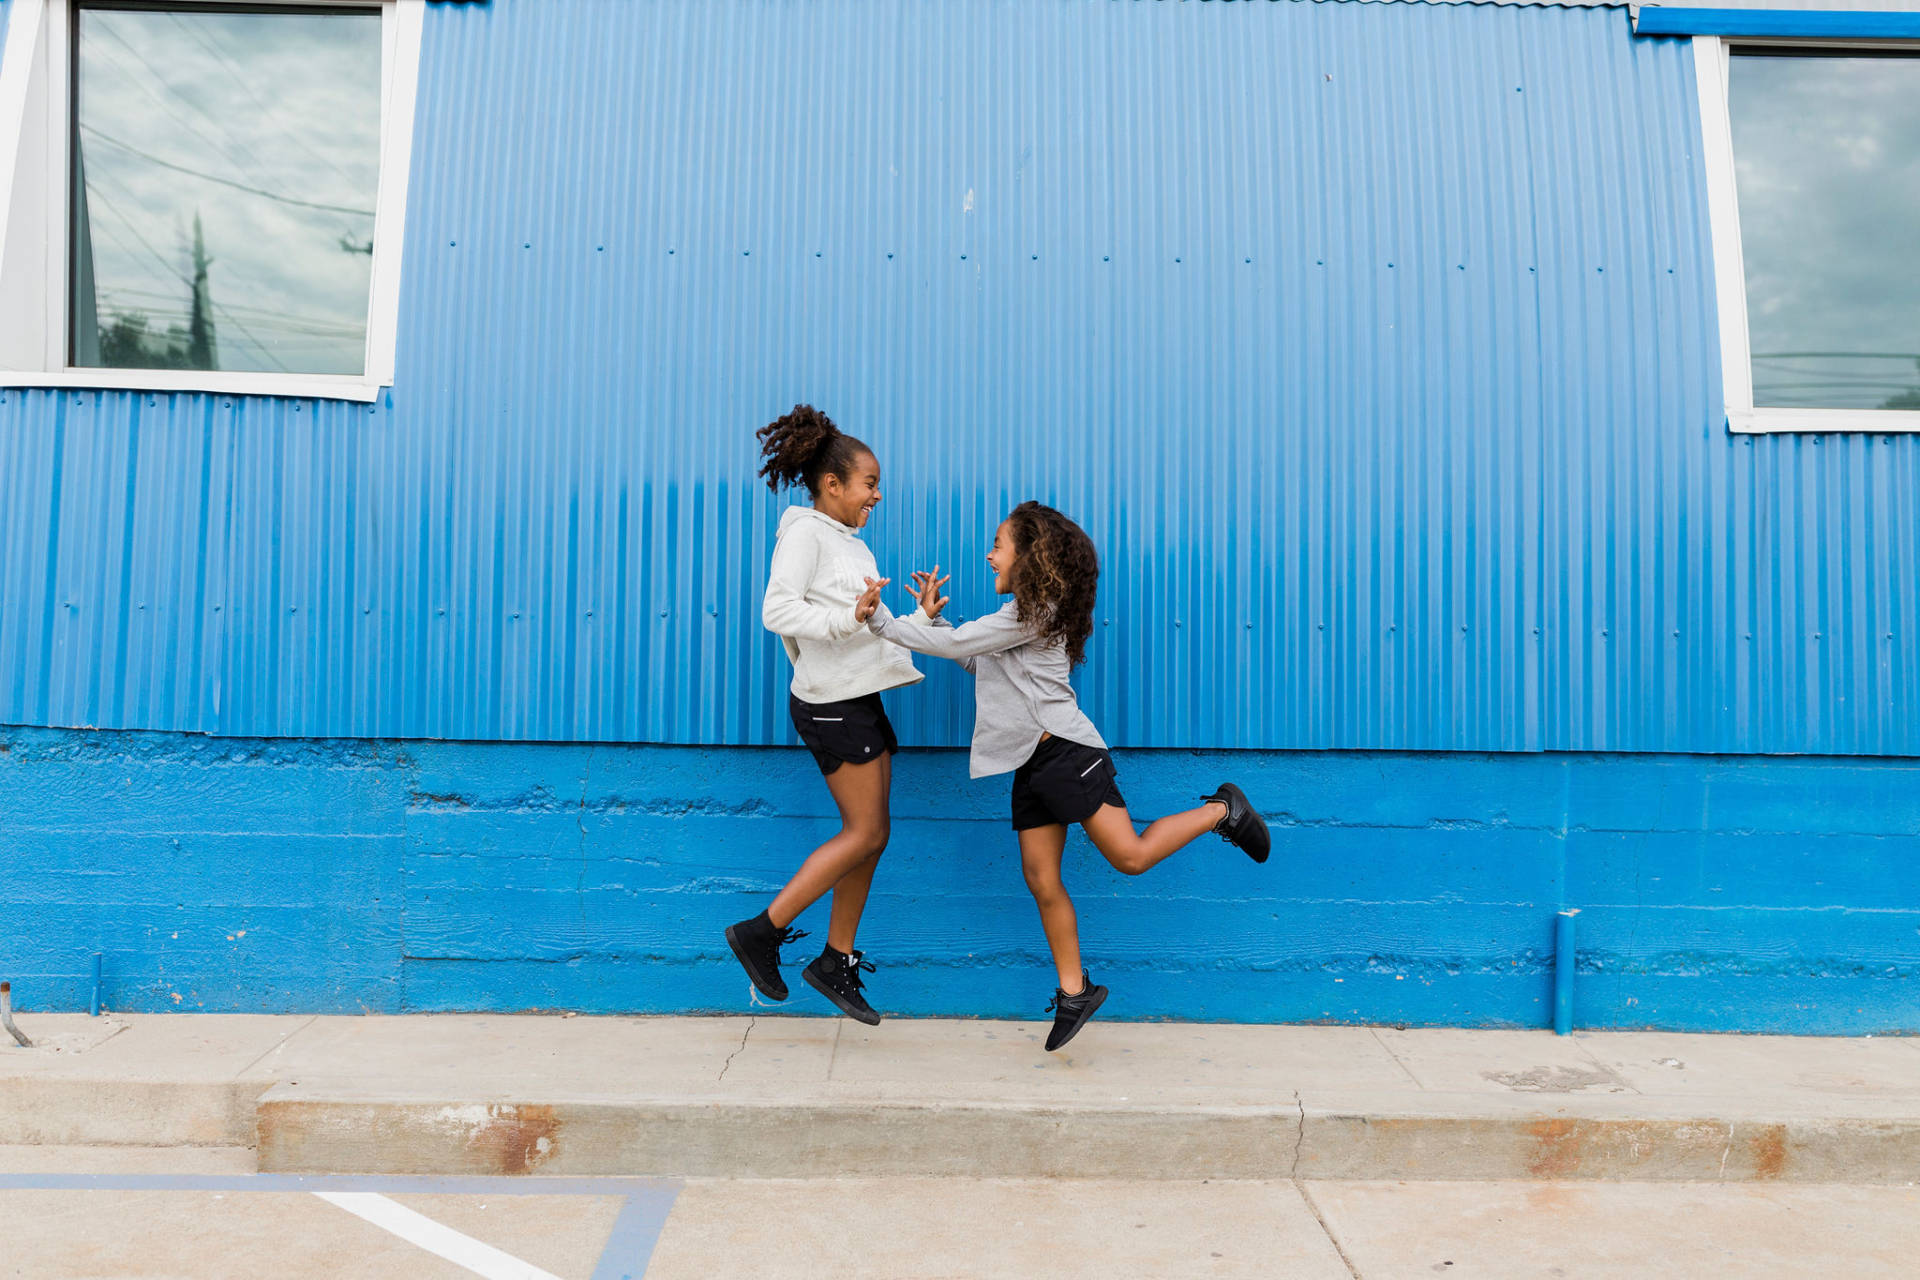 Today is the International Day of the Girl and we are so excited to celebrate with Athleta! Athleta is bringing together girls from all around the country to encourage them tofind their voices, and then use them.